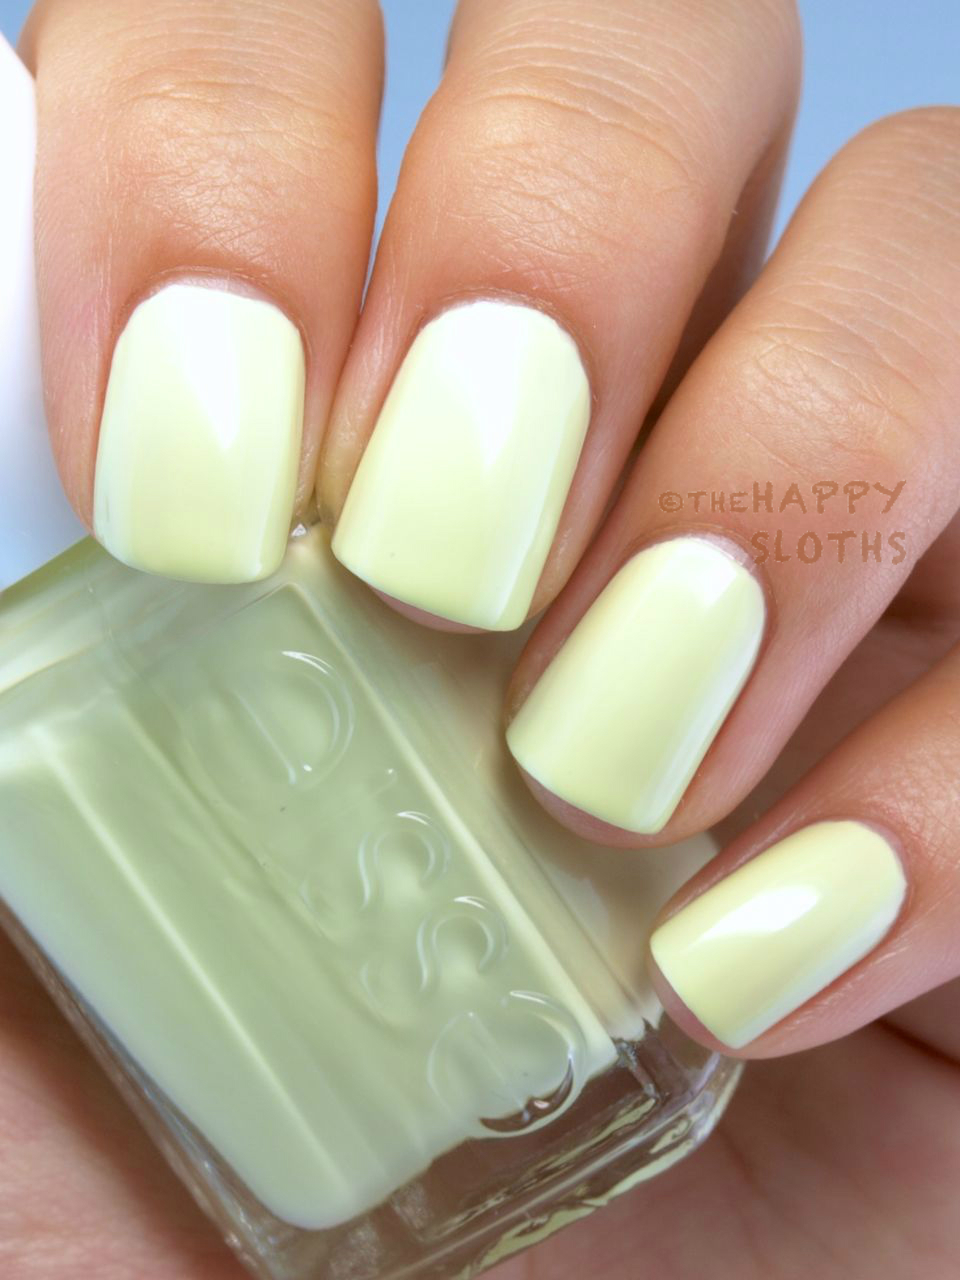 Essie Summer 2015 Collection: Review and Swatches | The Happy Sloths ...